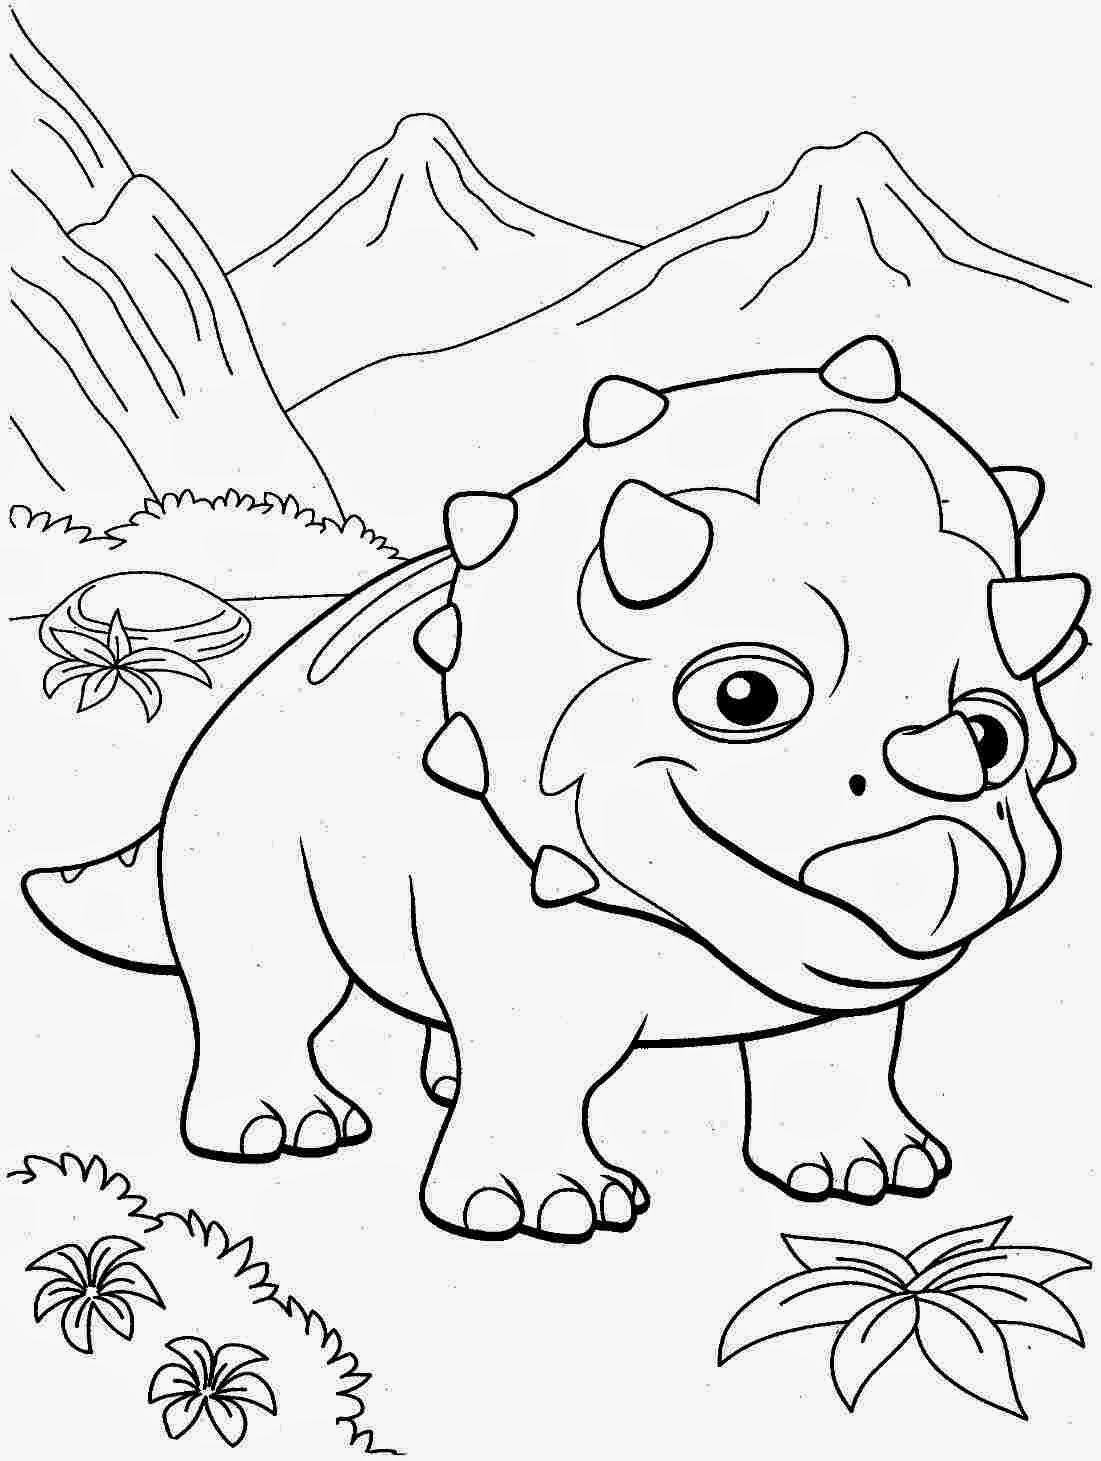 dinosaur colouring pages printable free printable dinosaur coloring pages for kids colouring dinosaur pages printable